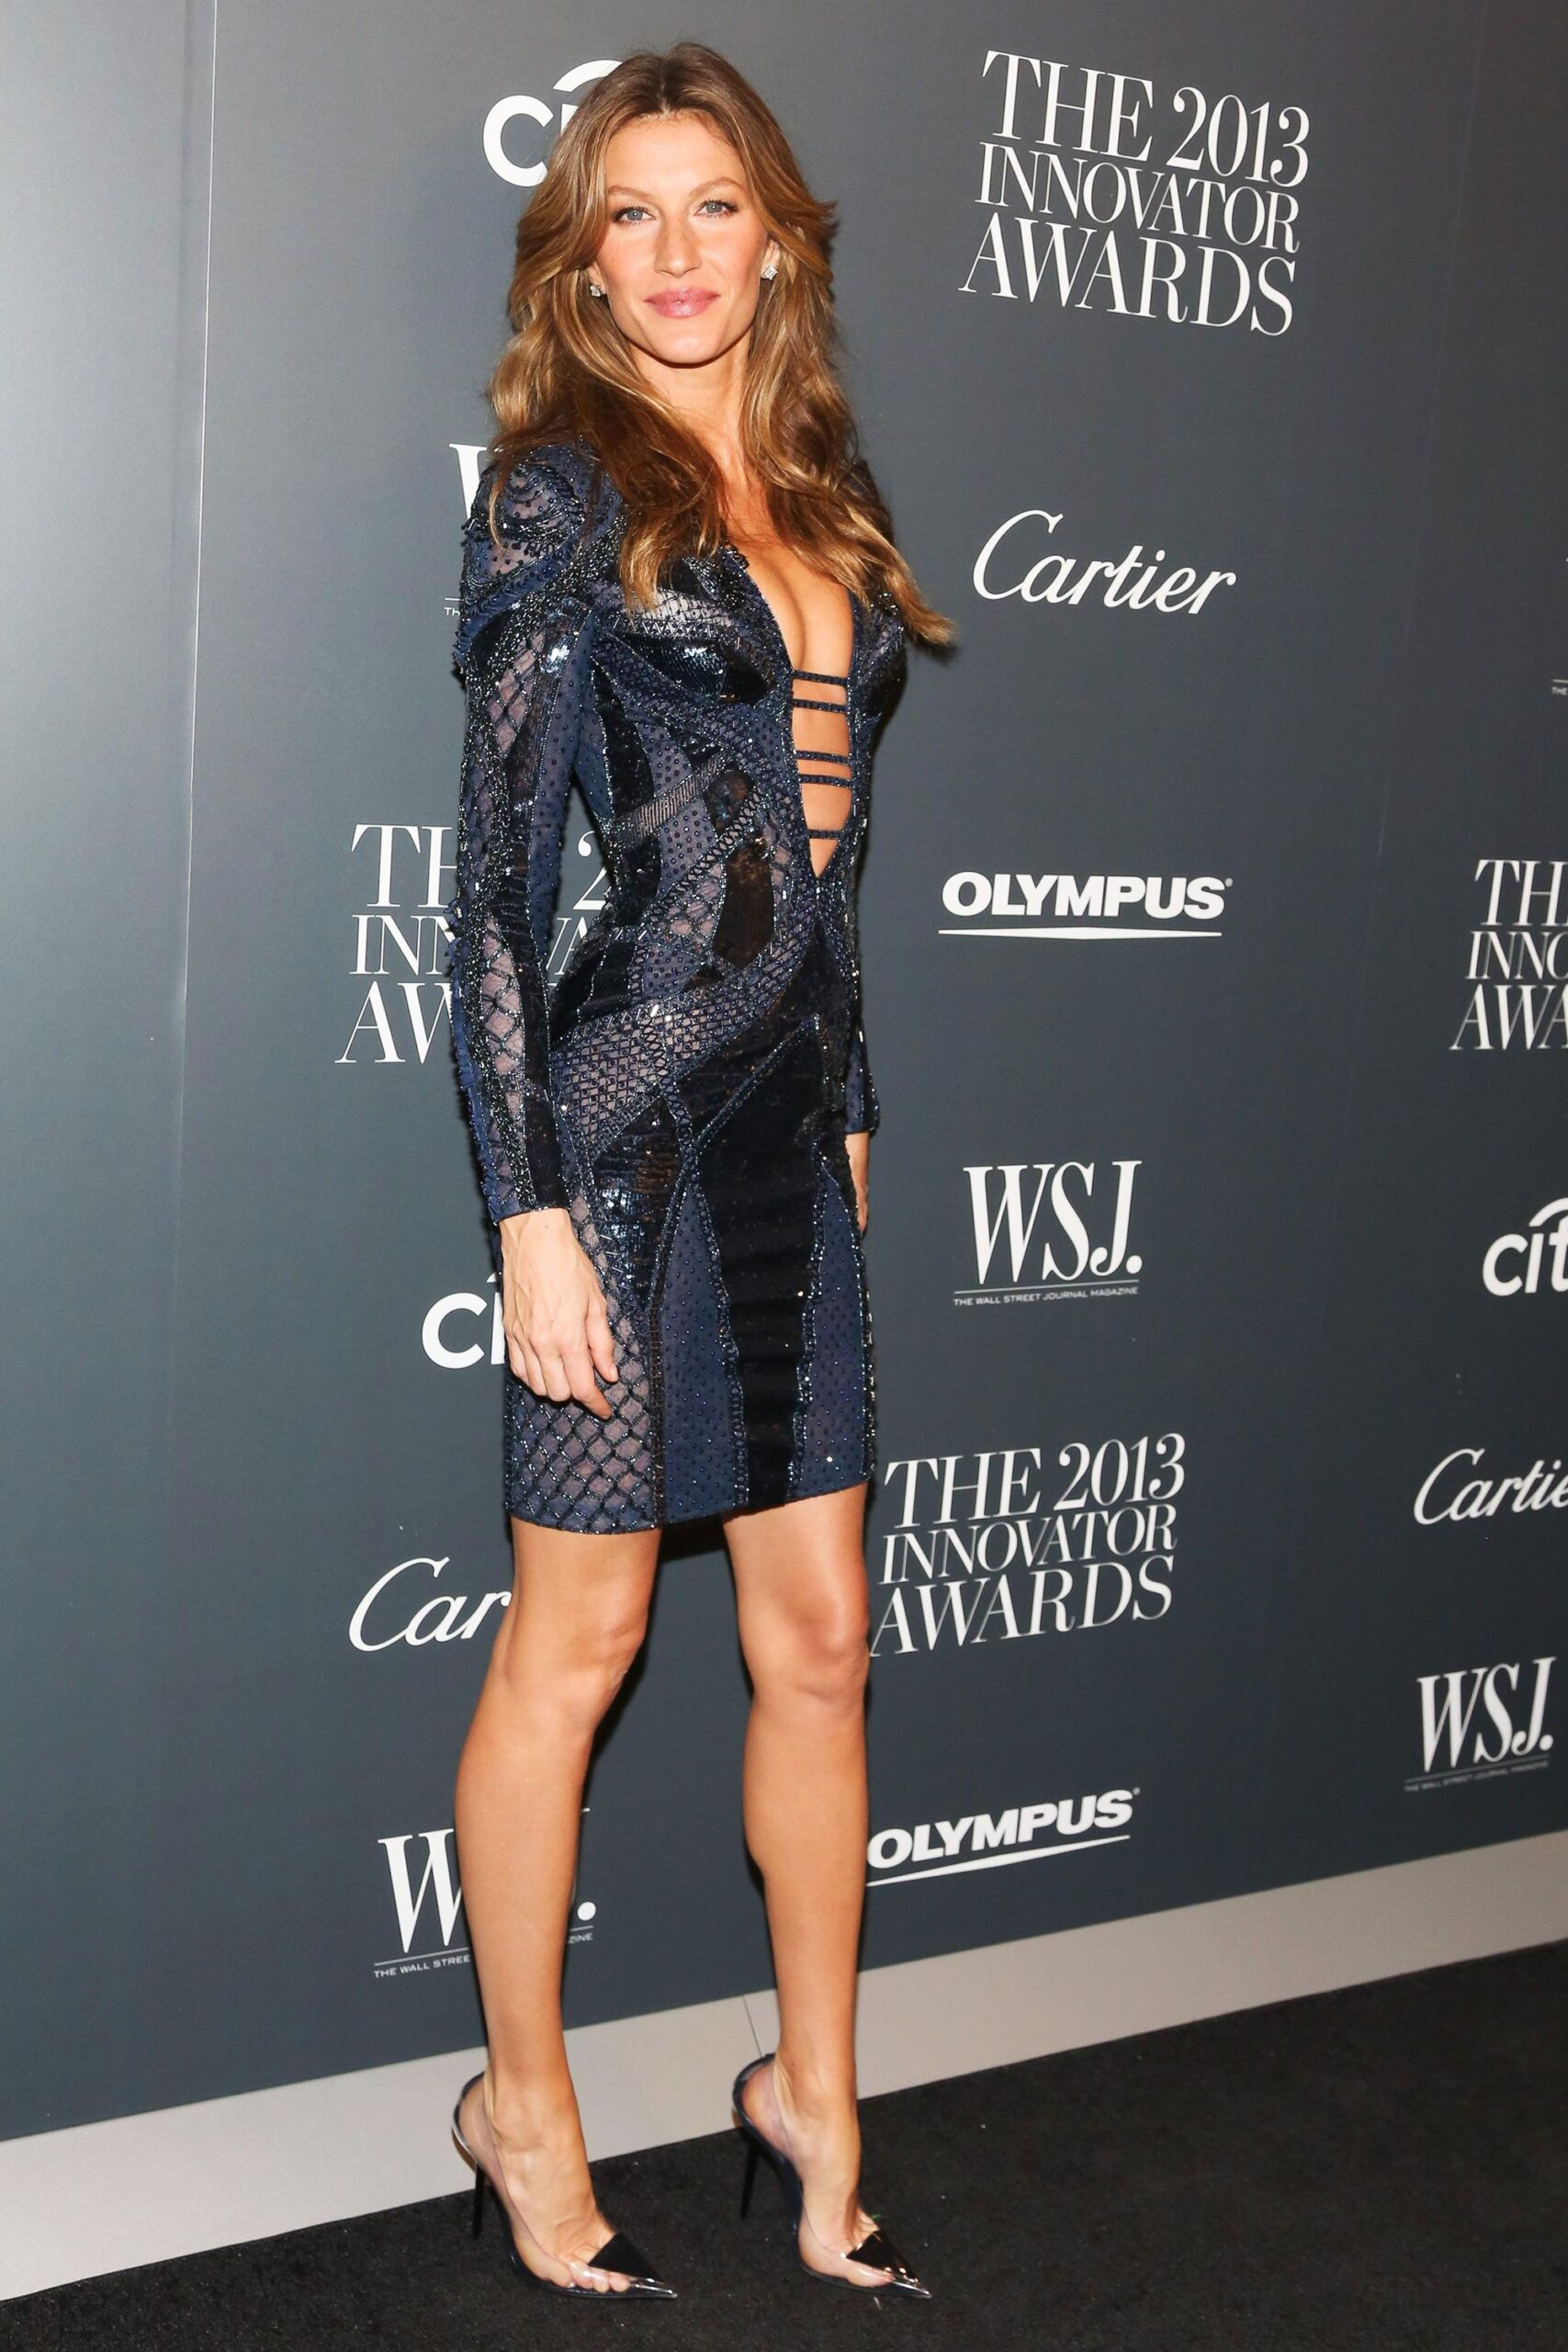 Gisele Bundchen Phone number, Email Id, Fanmail, Instagram, Tiktok, and Contact Details